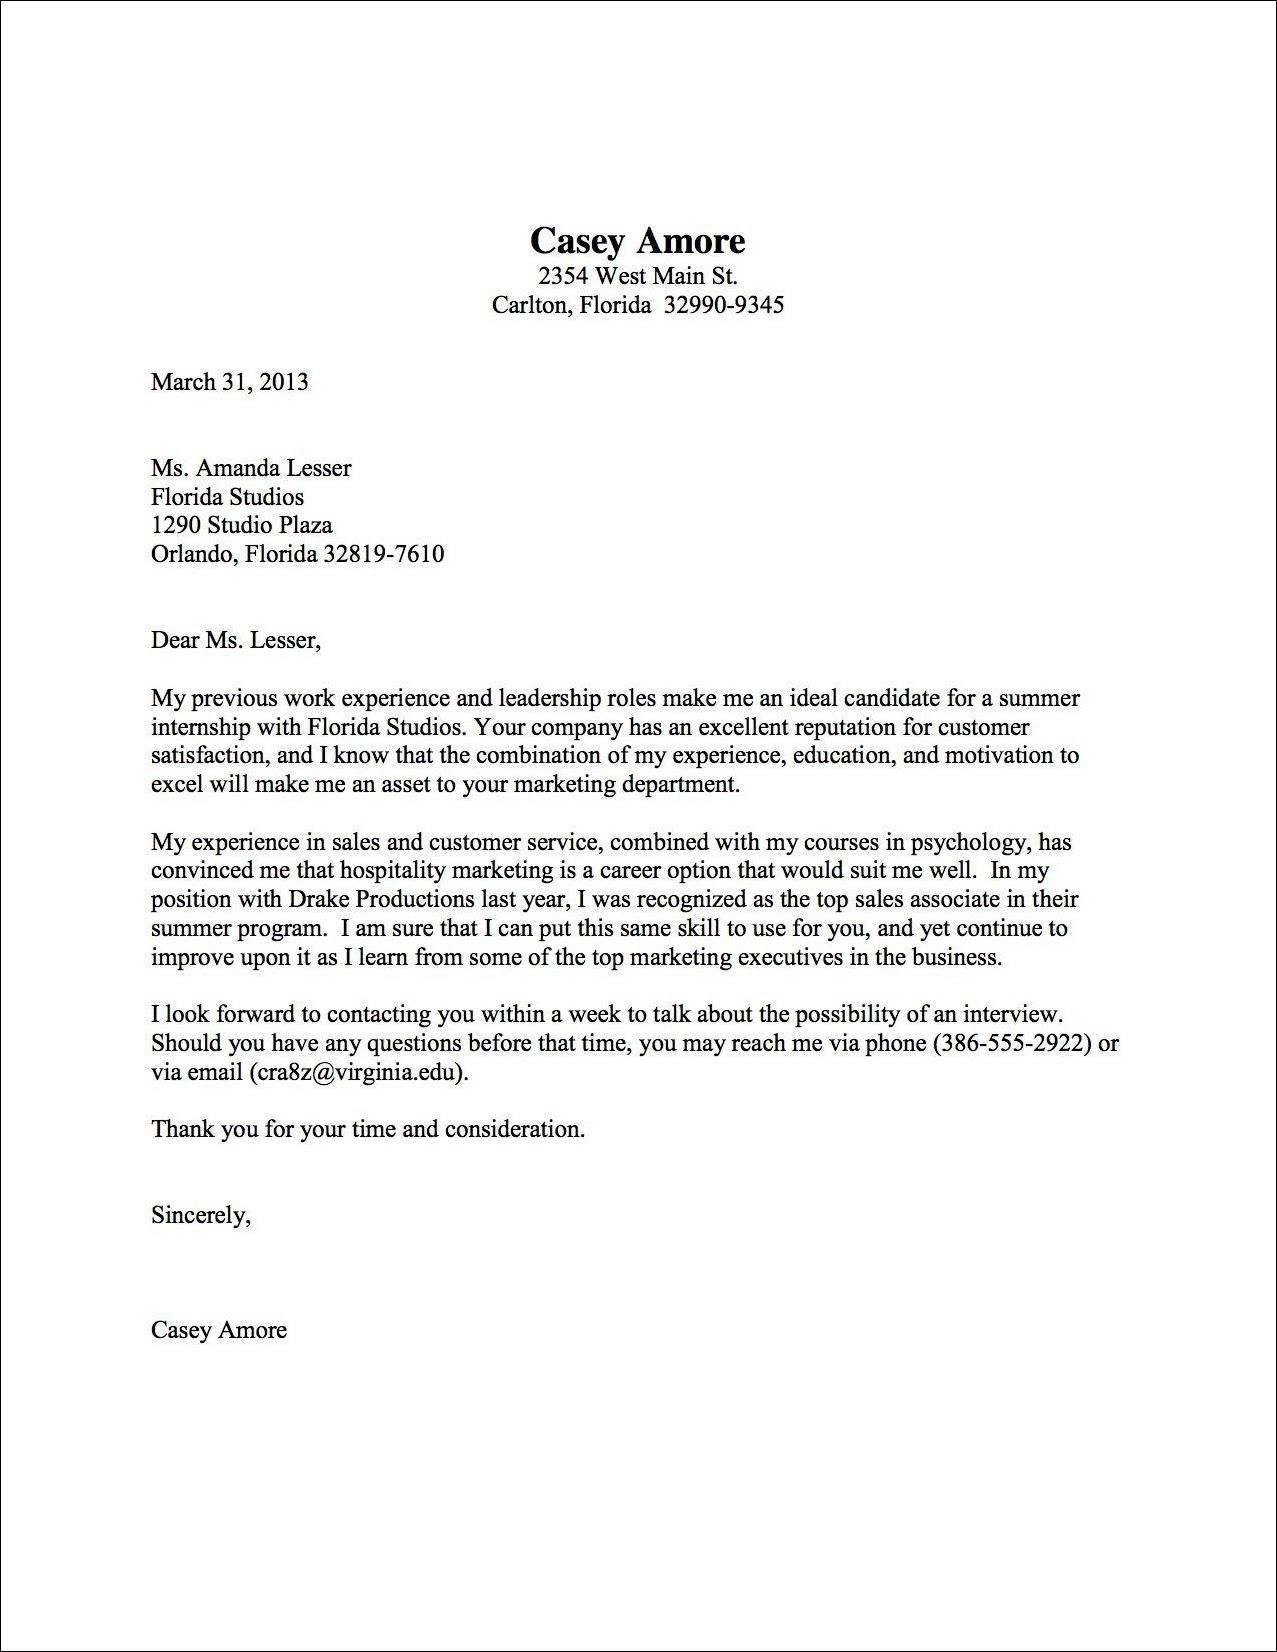 Cover letter sample uva career center cover letter samples cover letter sample uva career center madrichimfo Image collections